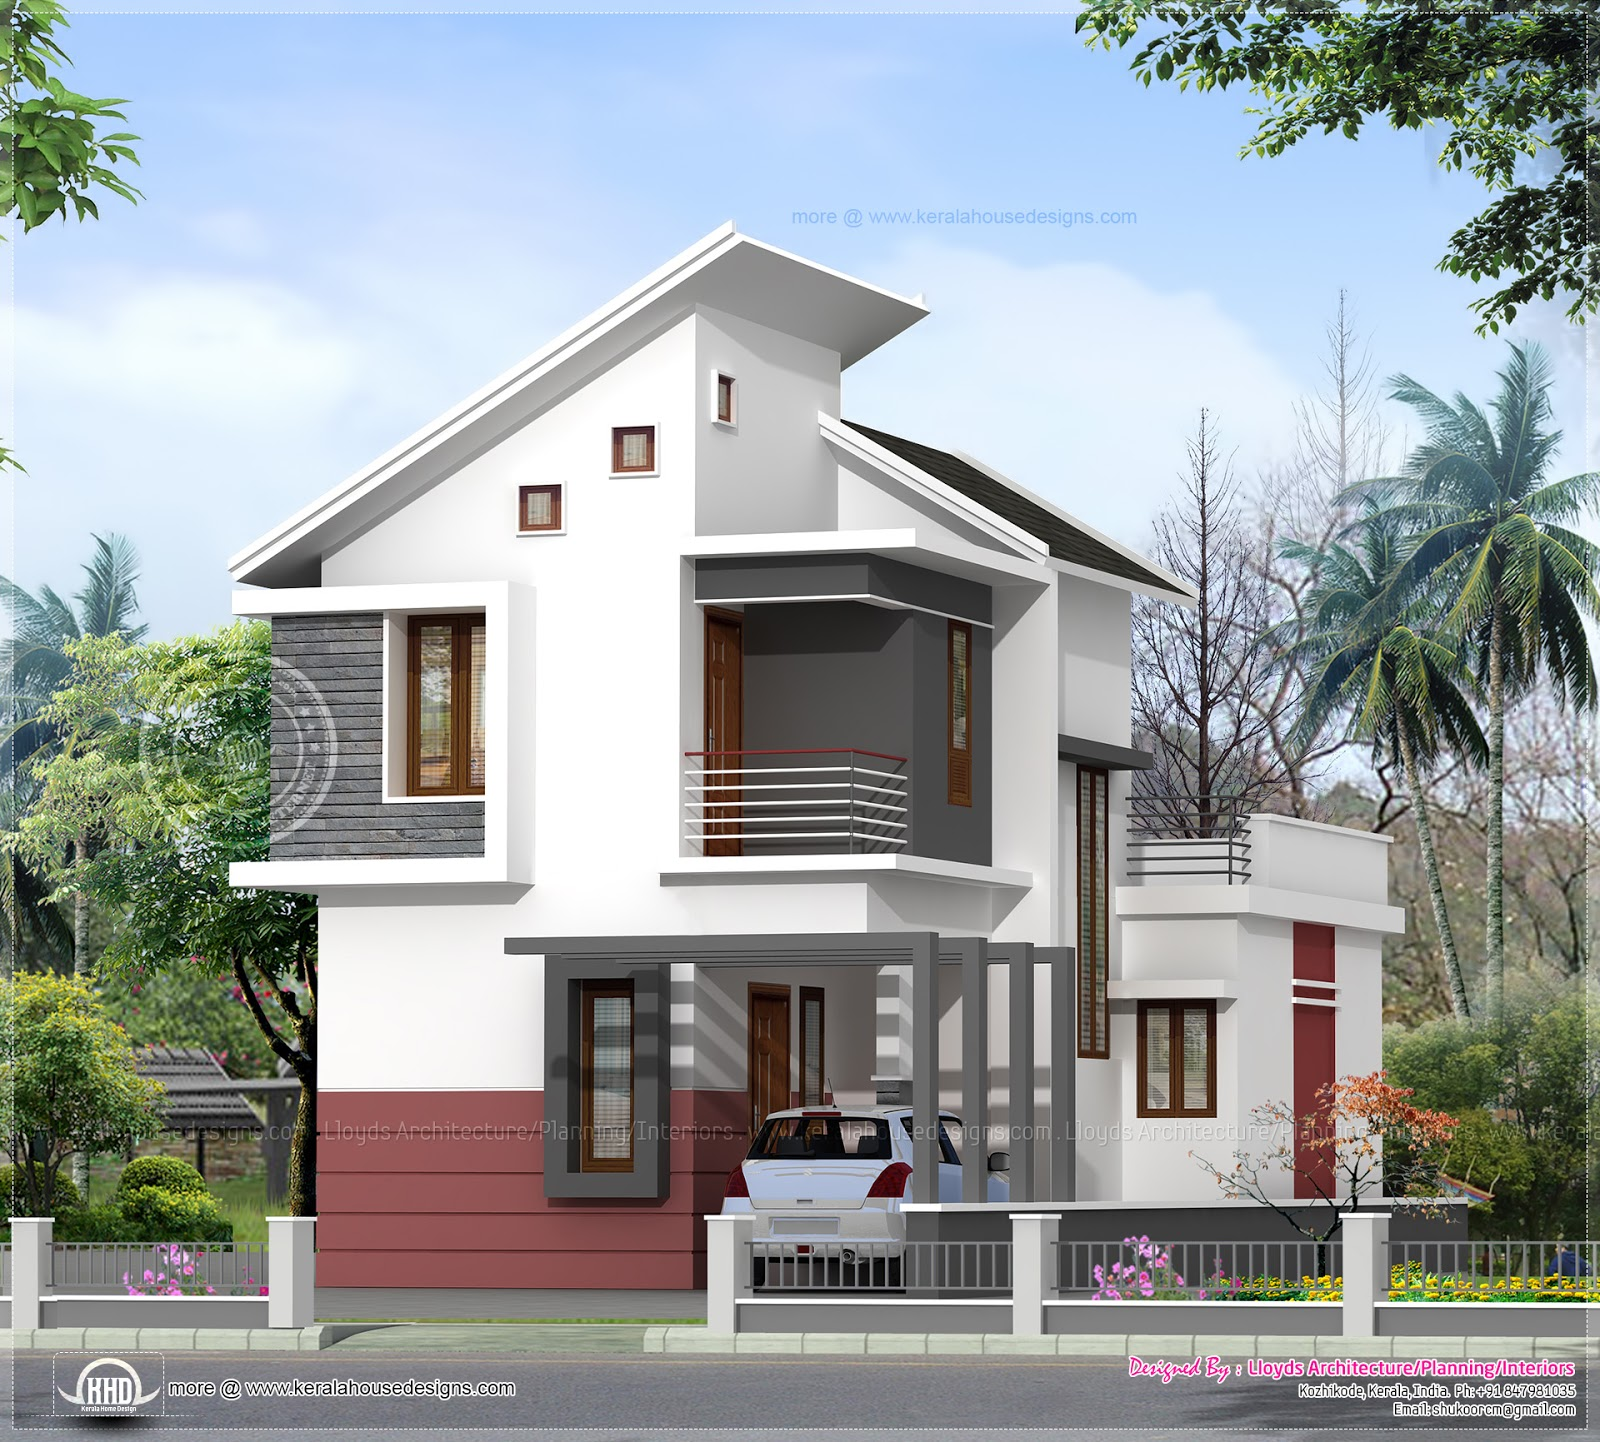 1197 sq ft 3 bedroom villa in 3 cents plot kerala home design and floor plans House design sites